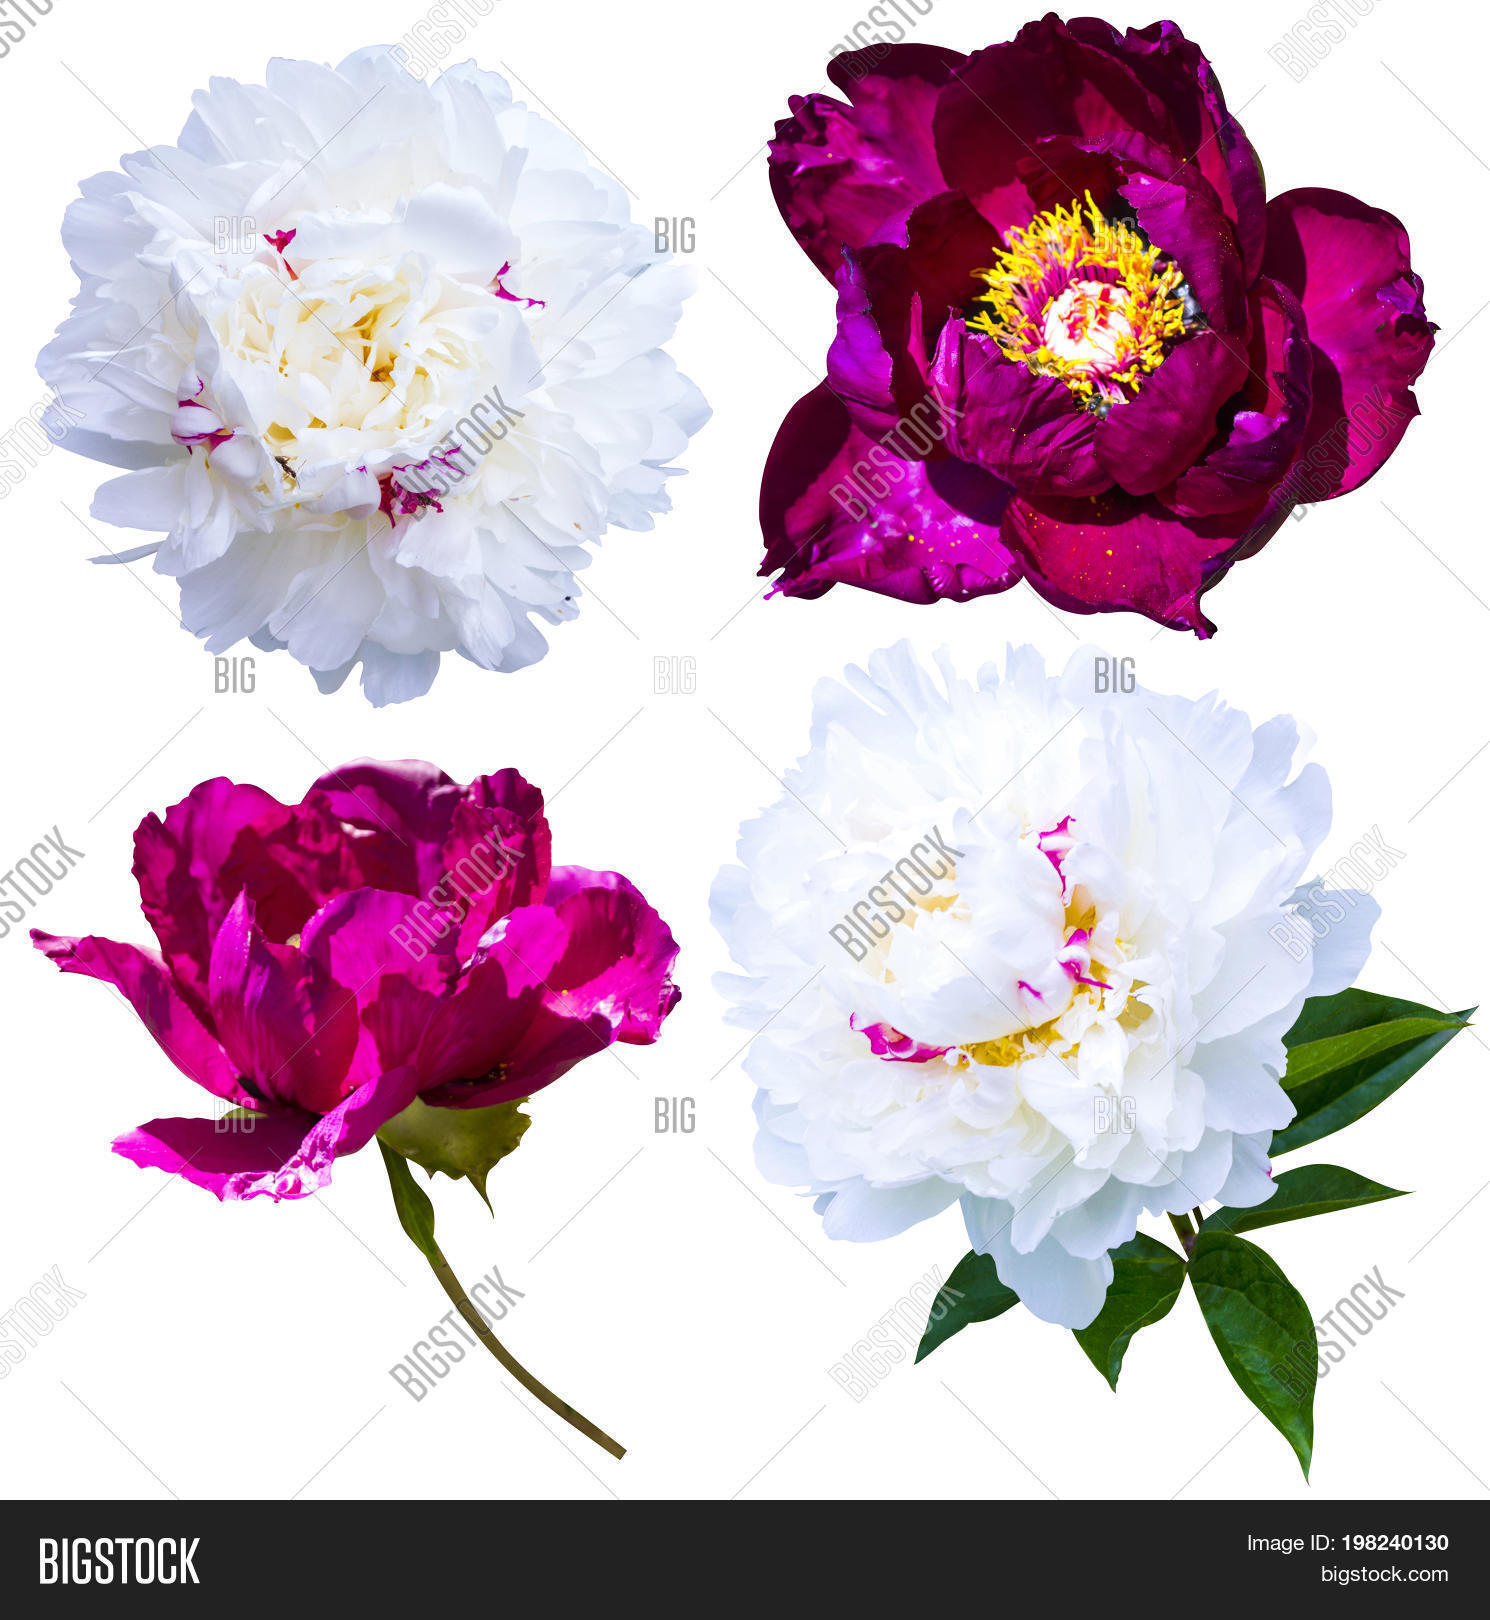 Peonies Isolated On Image Photo Free Trial Bigstock